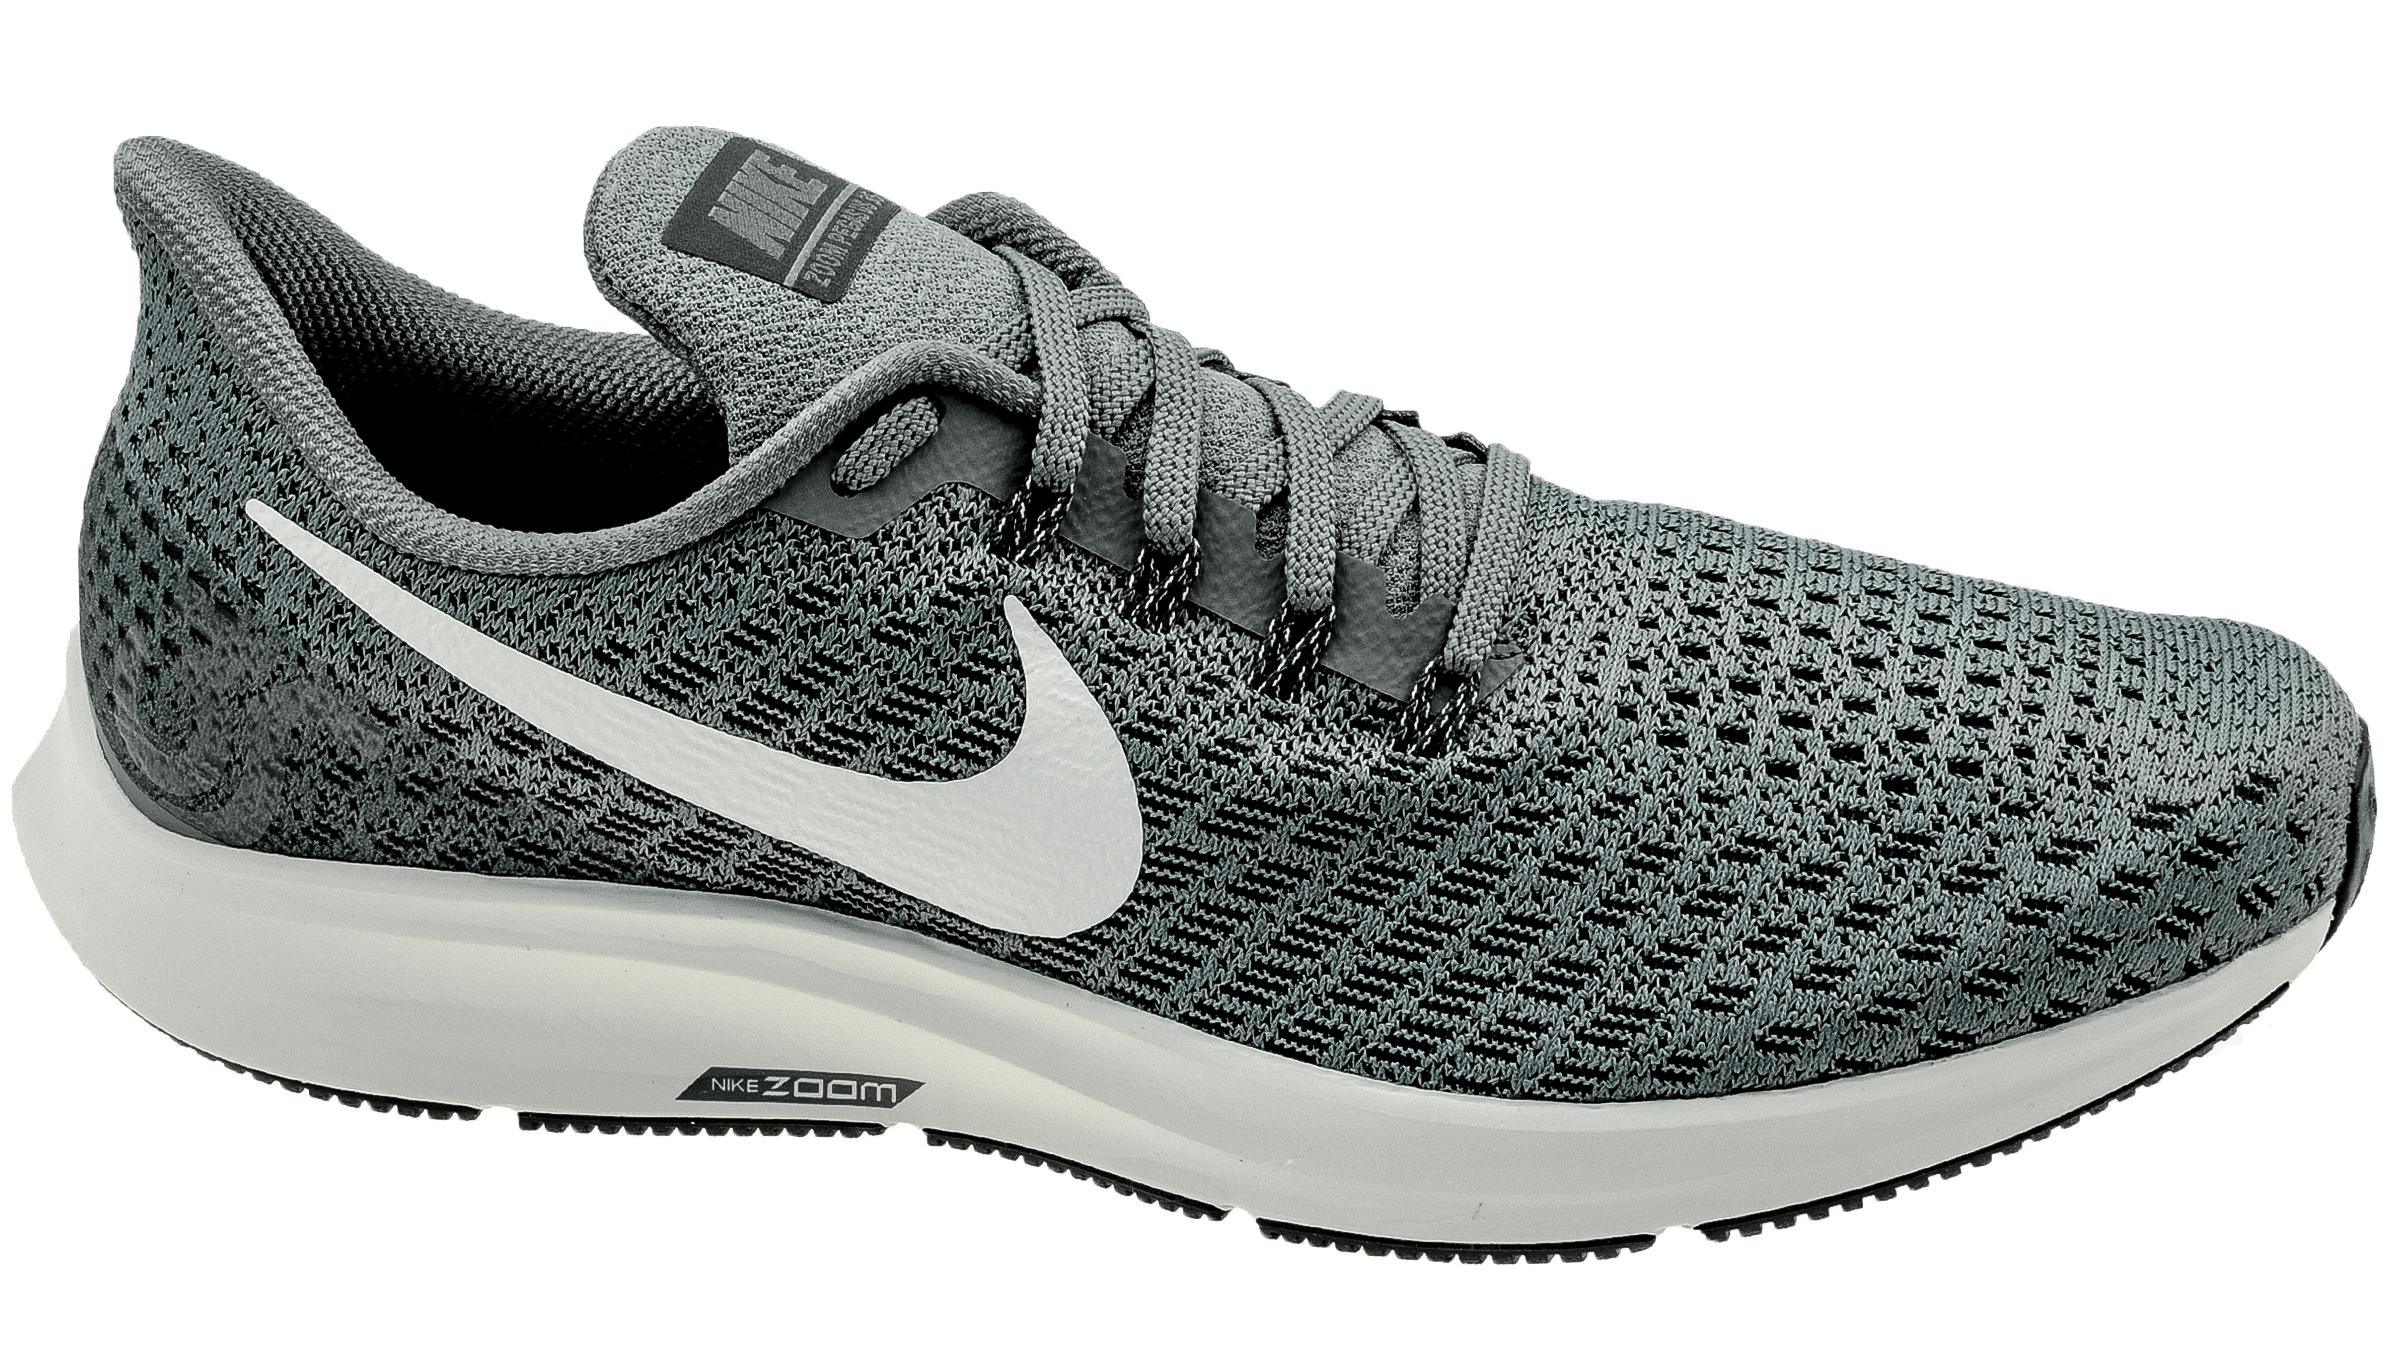 Nike Air Zoom Pegasus 35 cool greypure platinum